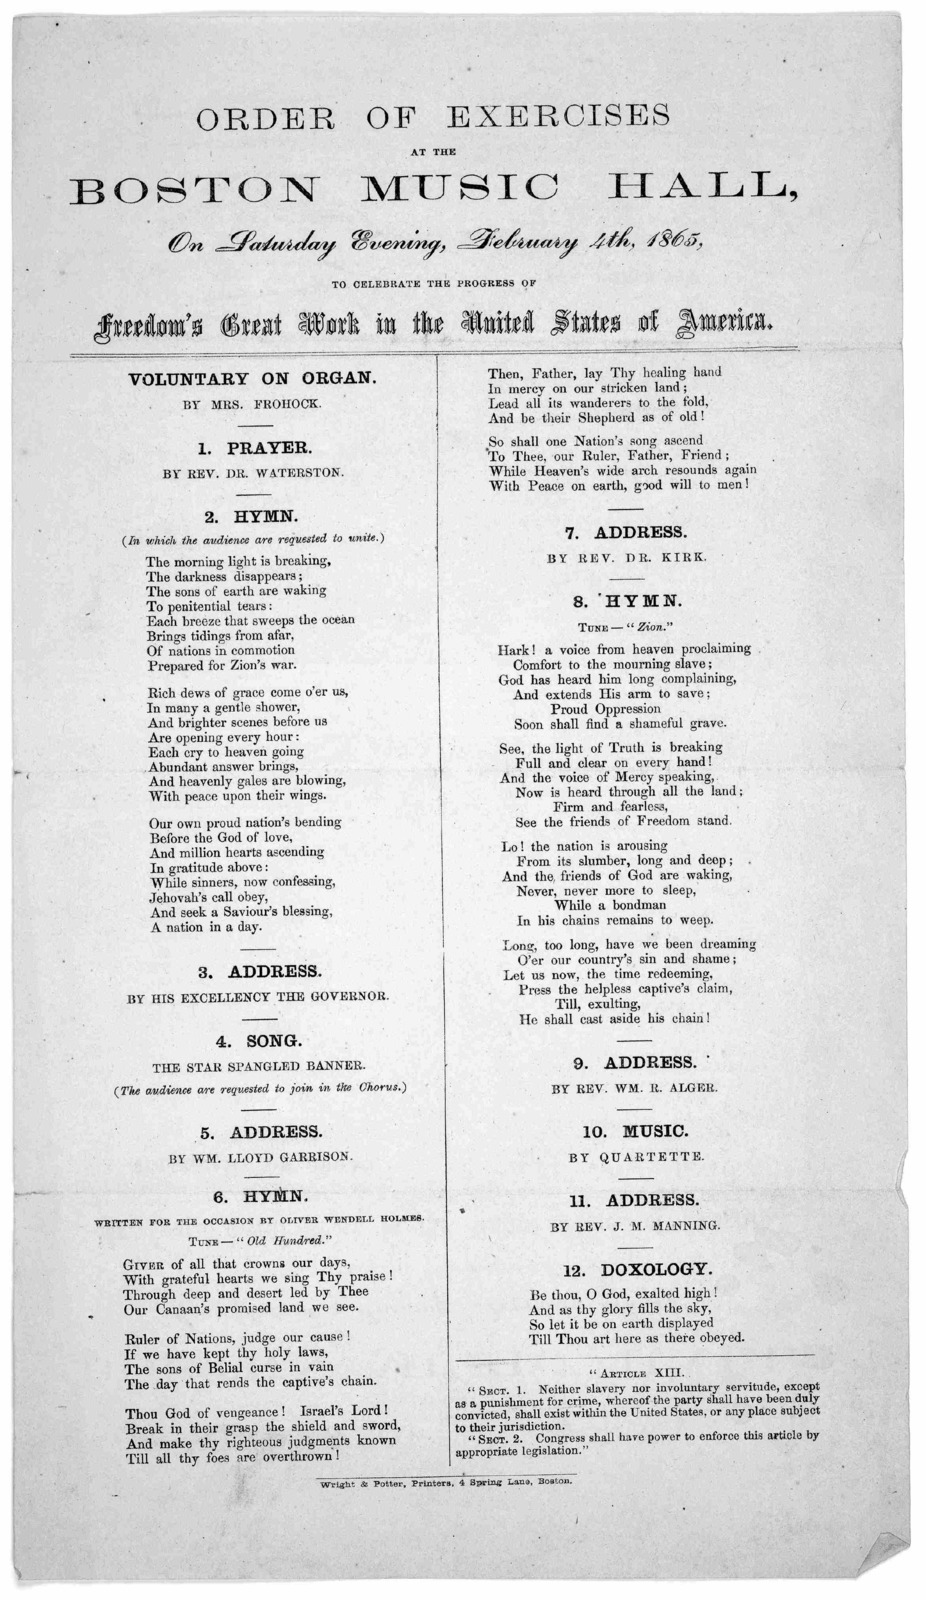 Order of exercises at the Boston music hall, on Saturday evening, February 4th, 1865 to celebrate the progress of freedom's great work in the United States of America. Boston. Wright & Potter, printers, 4 Spring Lane.